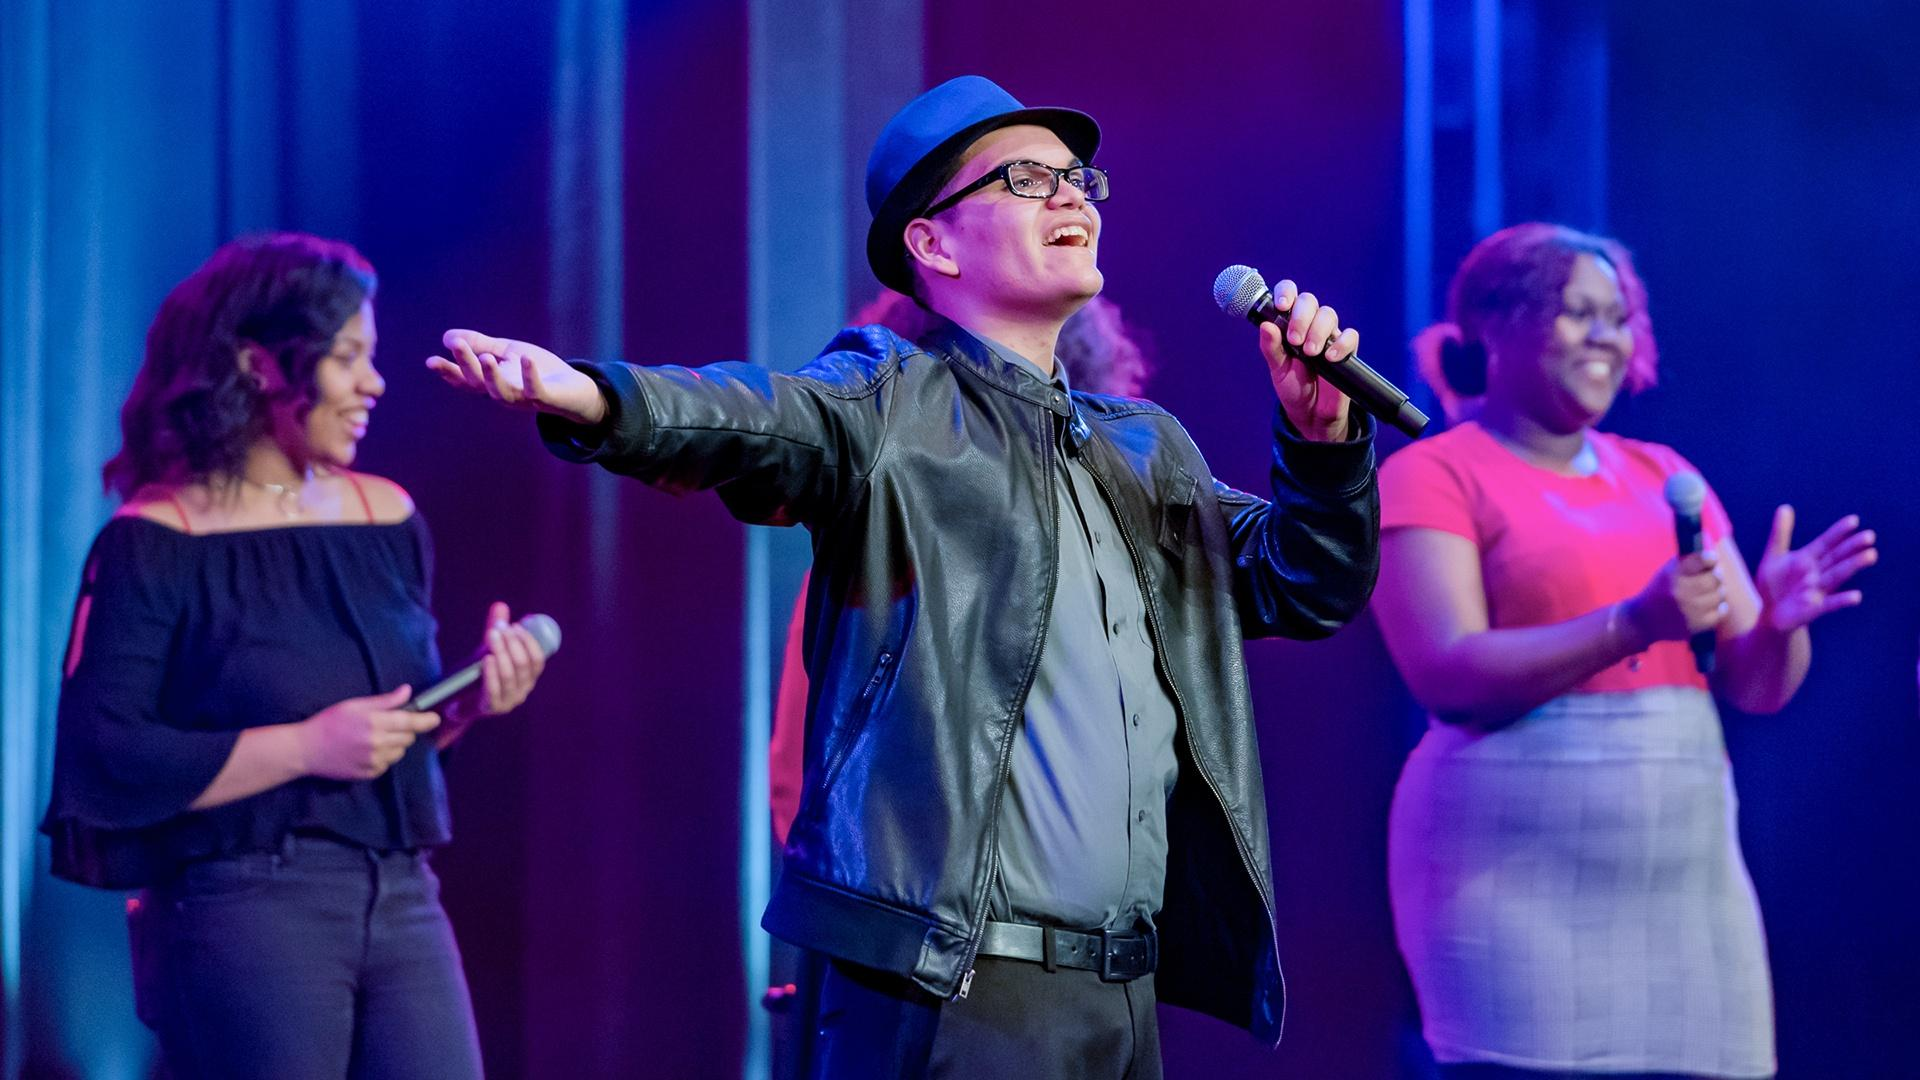 PBS Wisconsin Music & Arts : A Cappella's New Note